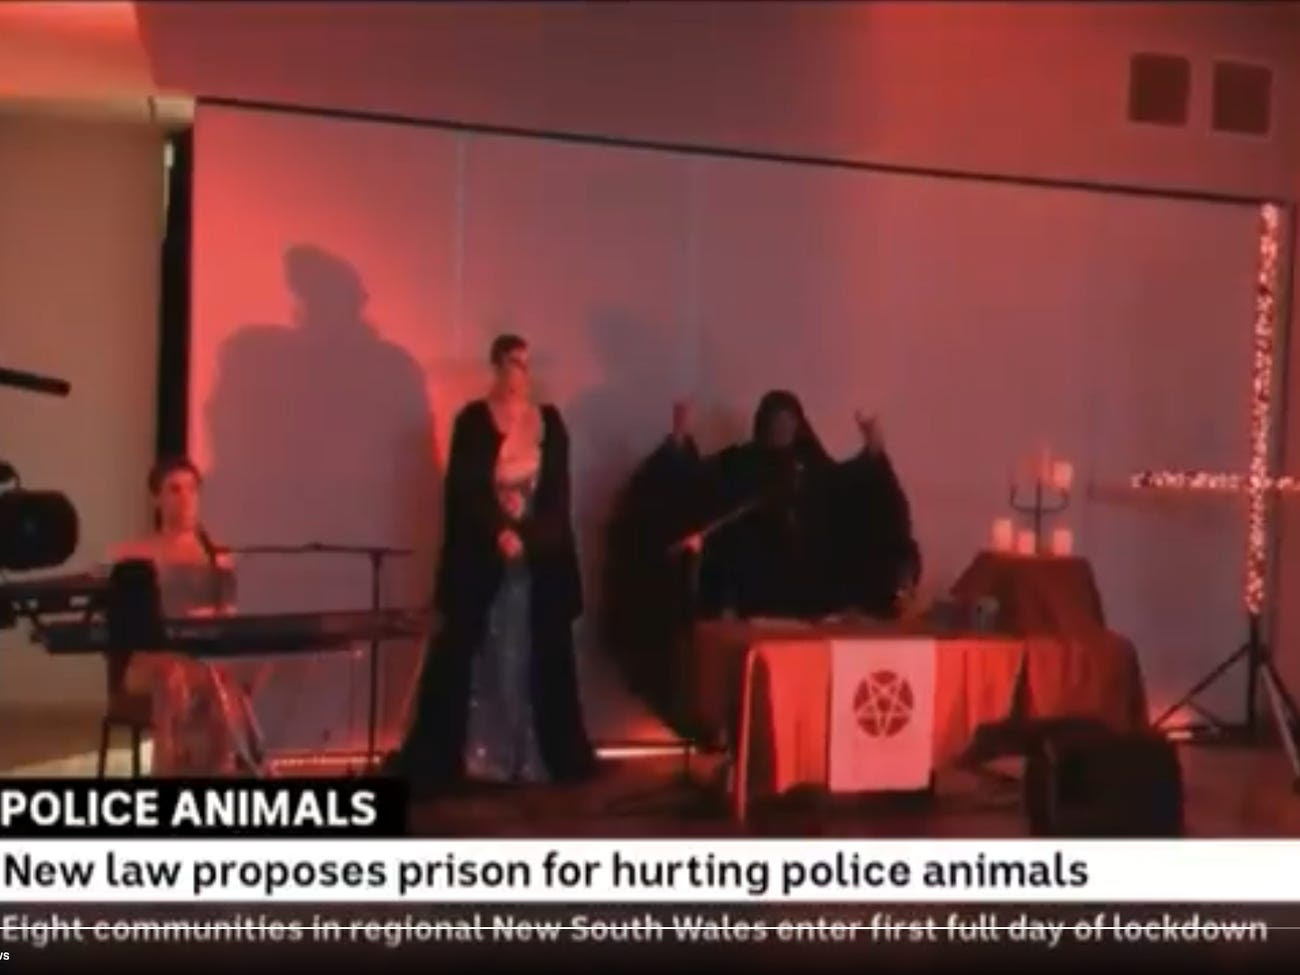 Satanic ritual accidentally included in broadcast on police dog welfare